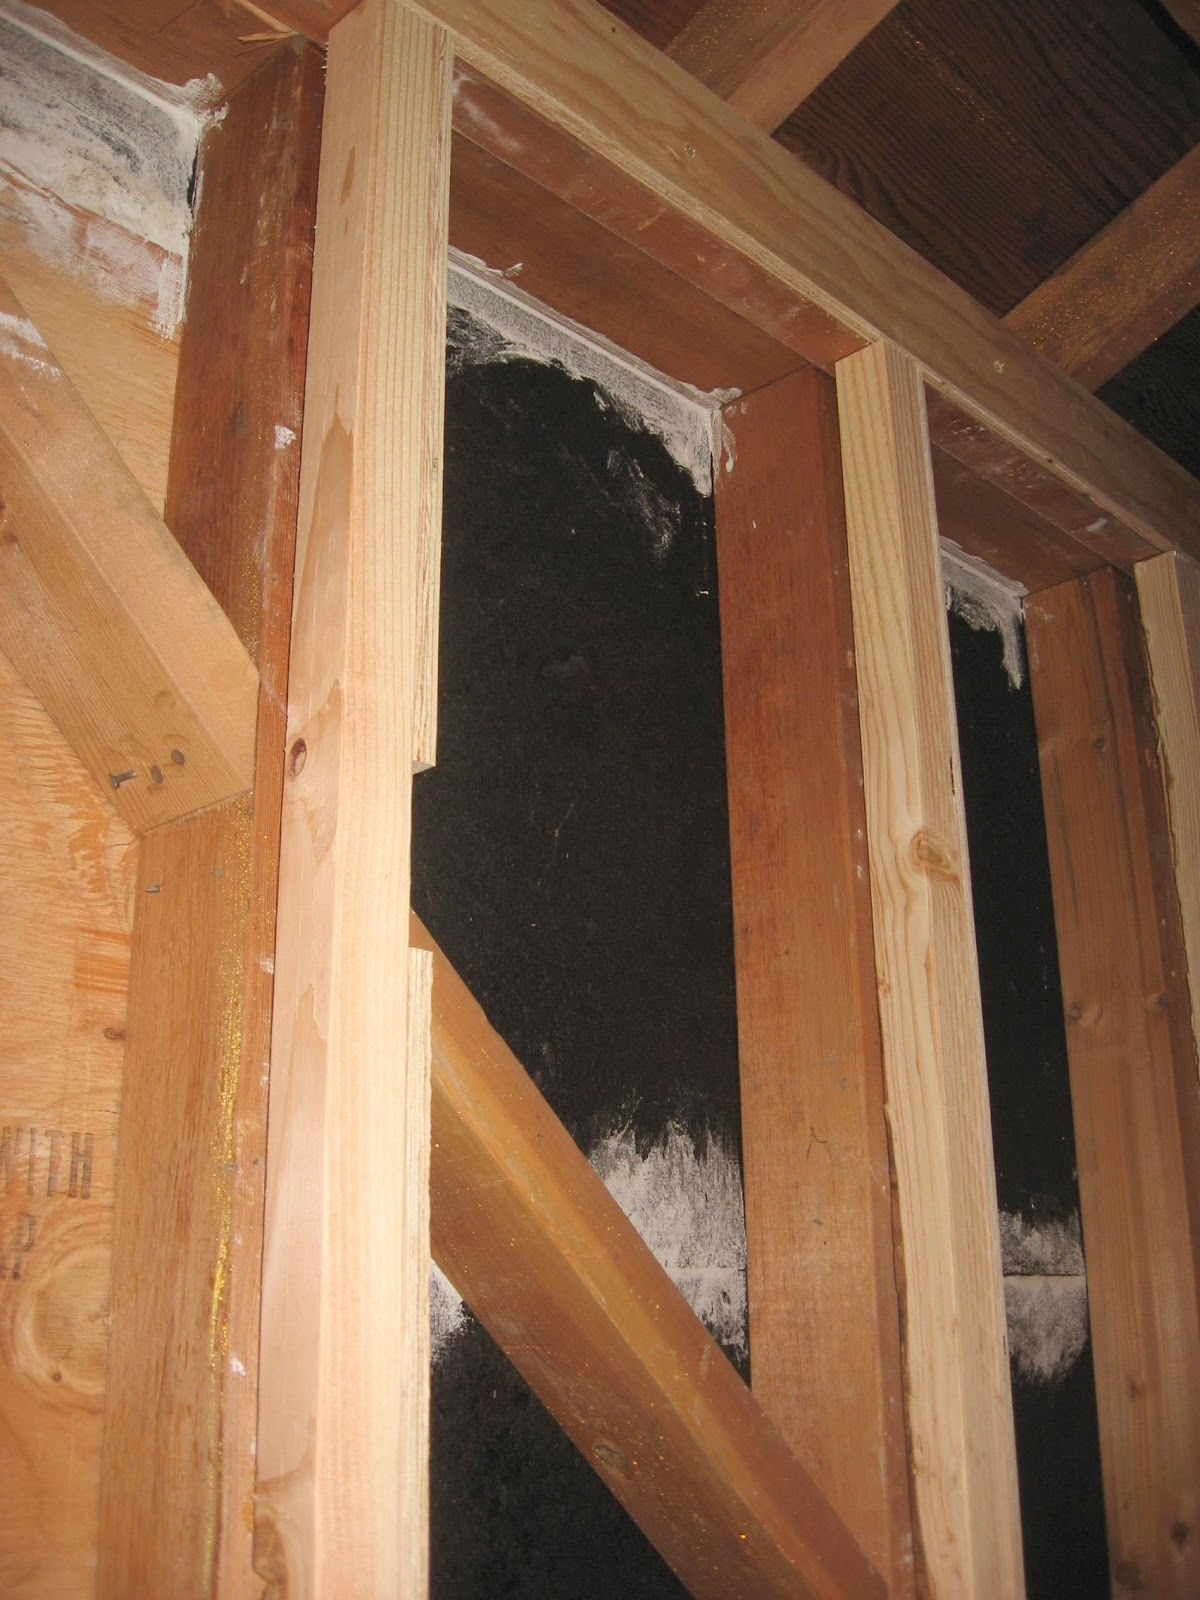 Energy Conservation How To: 2x4 Framing Build-Out To 2x6